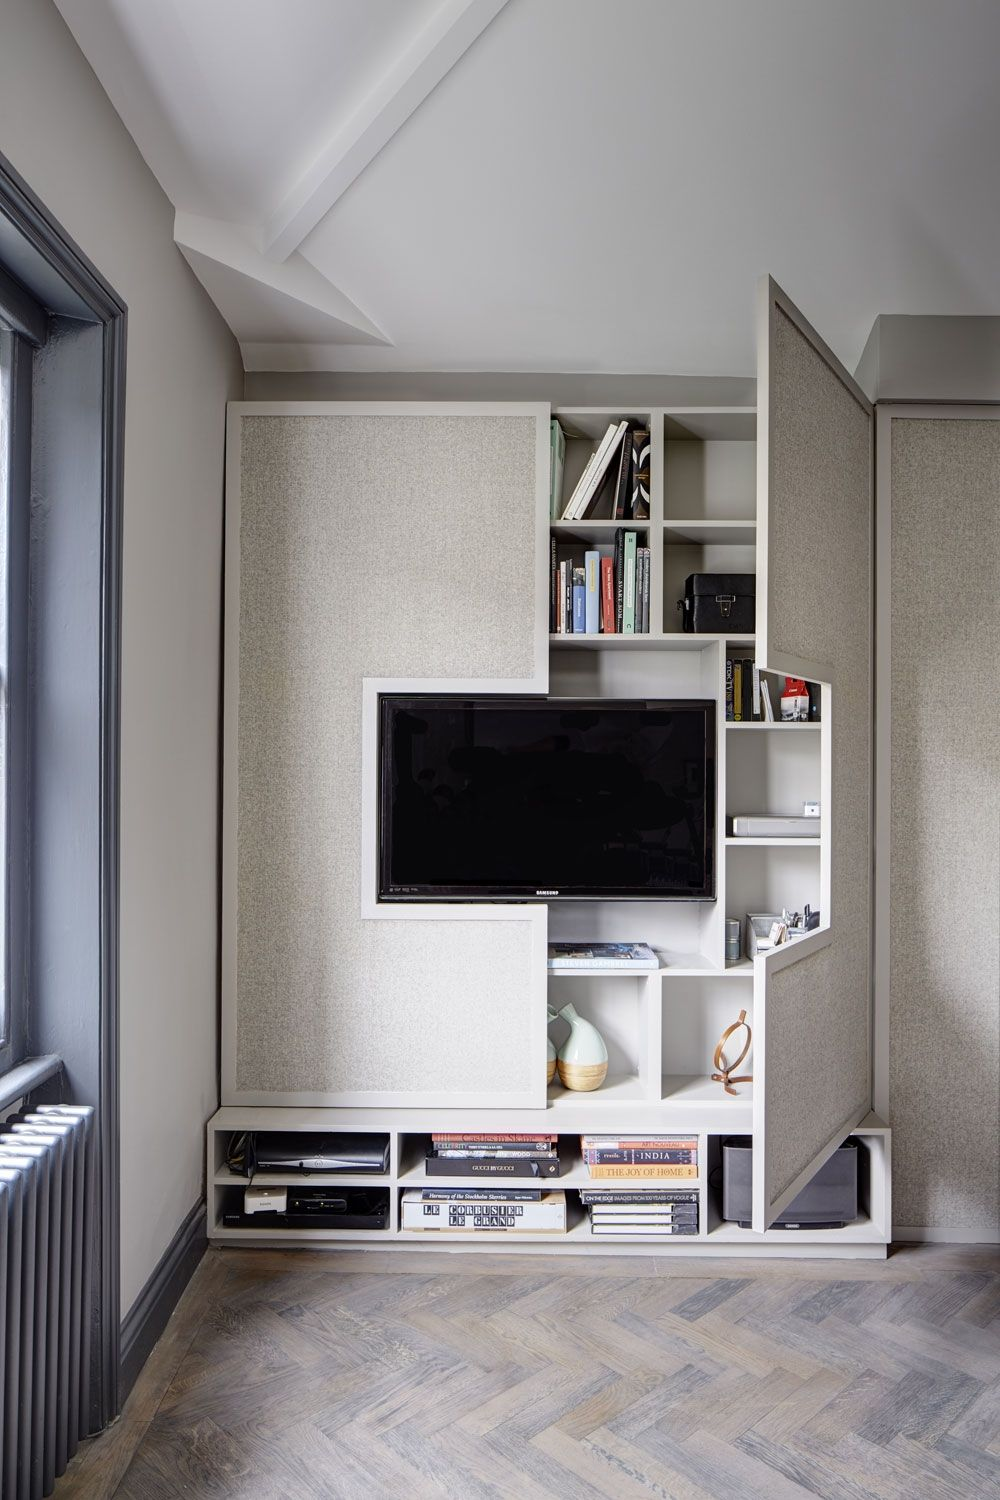 ... - High style, low-budget in this 750 square foot English flat